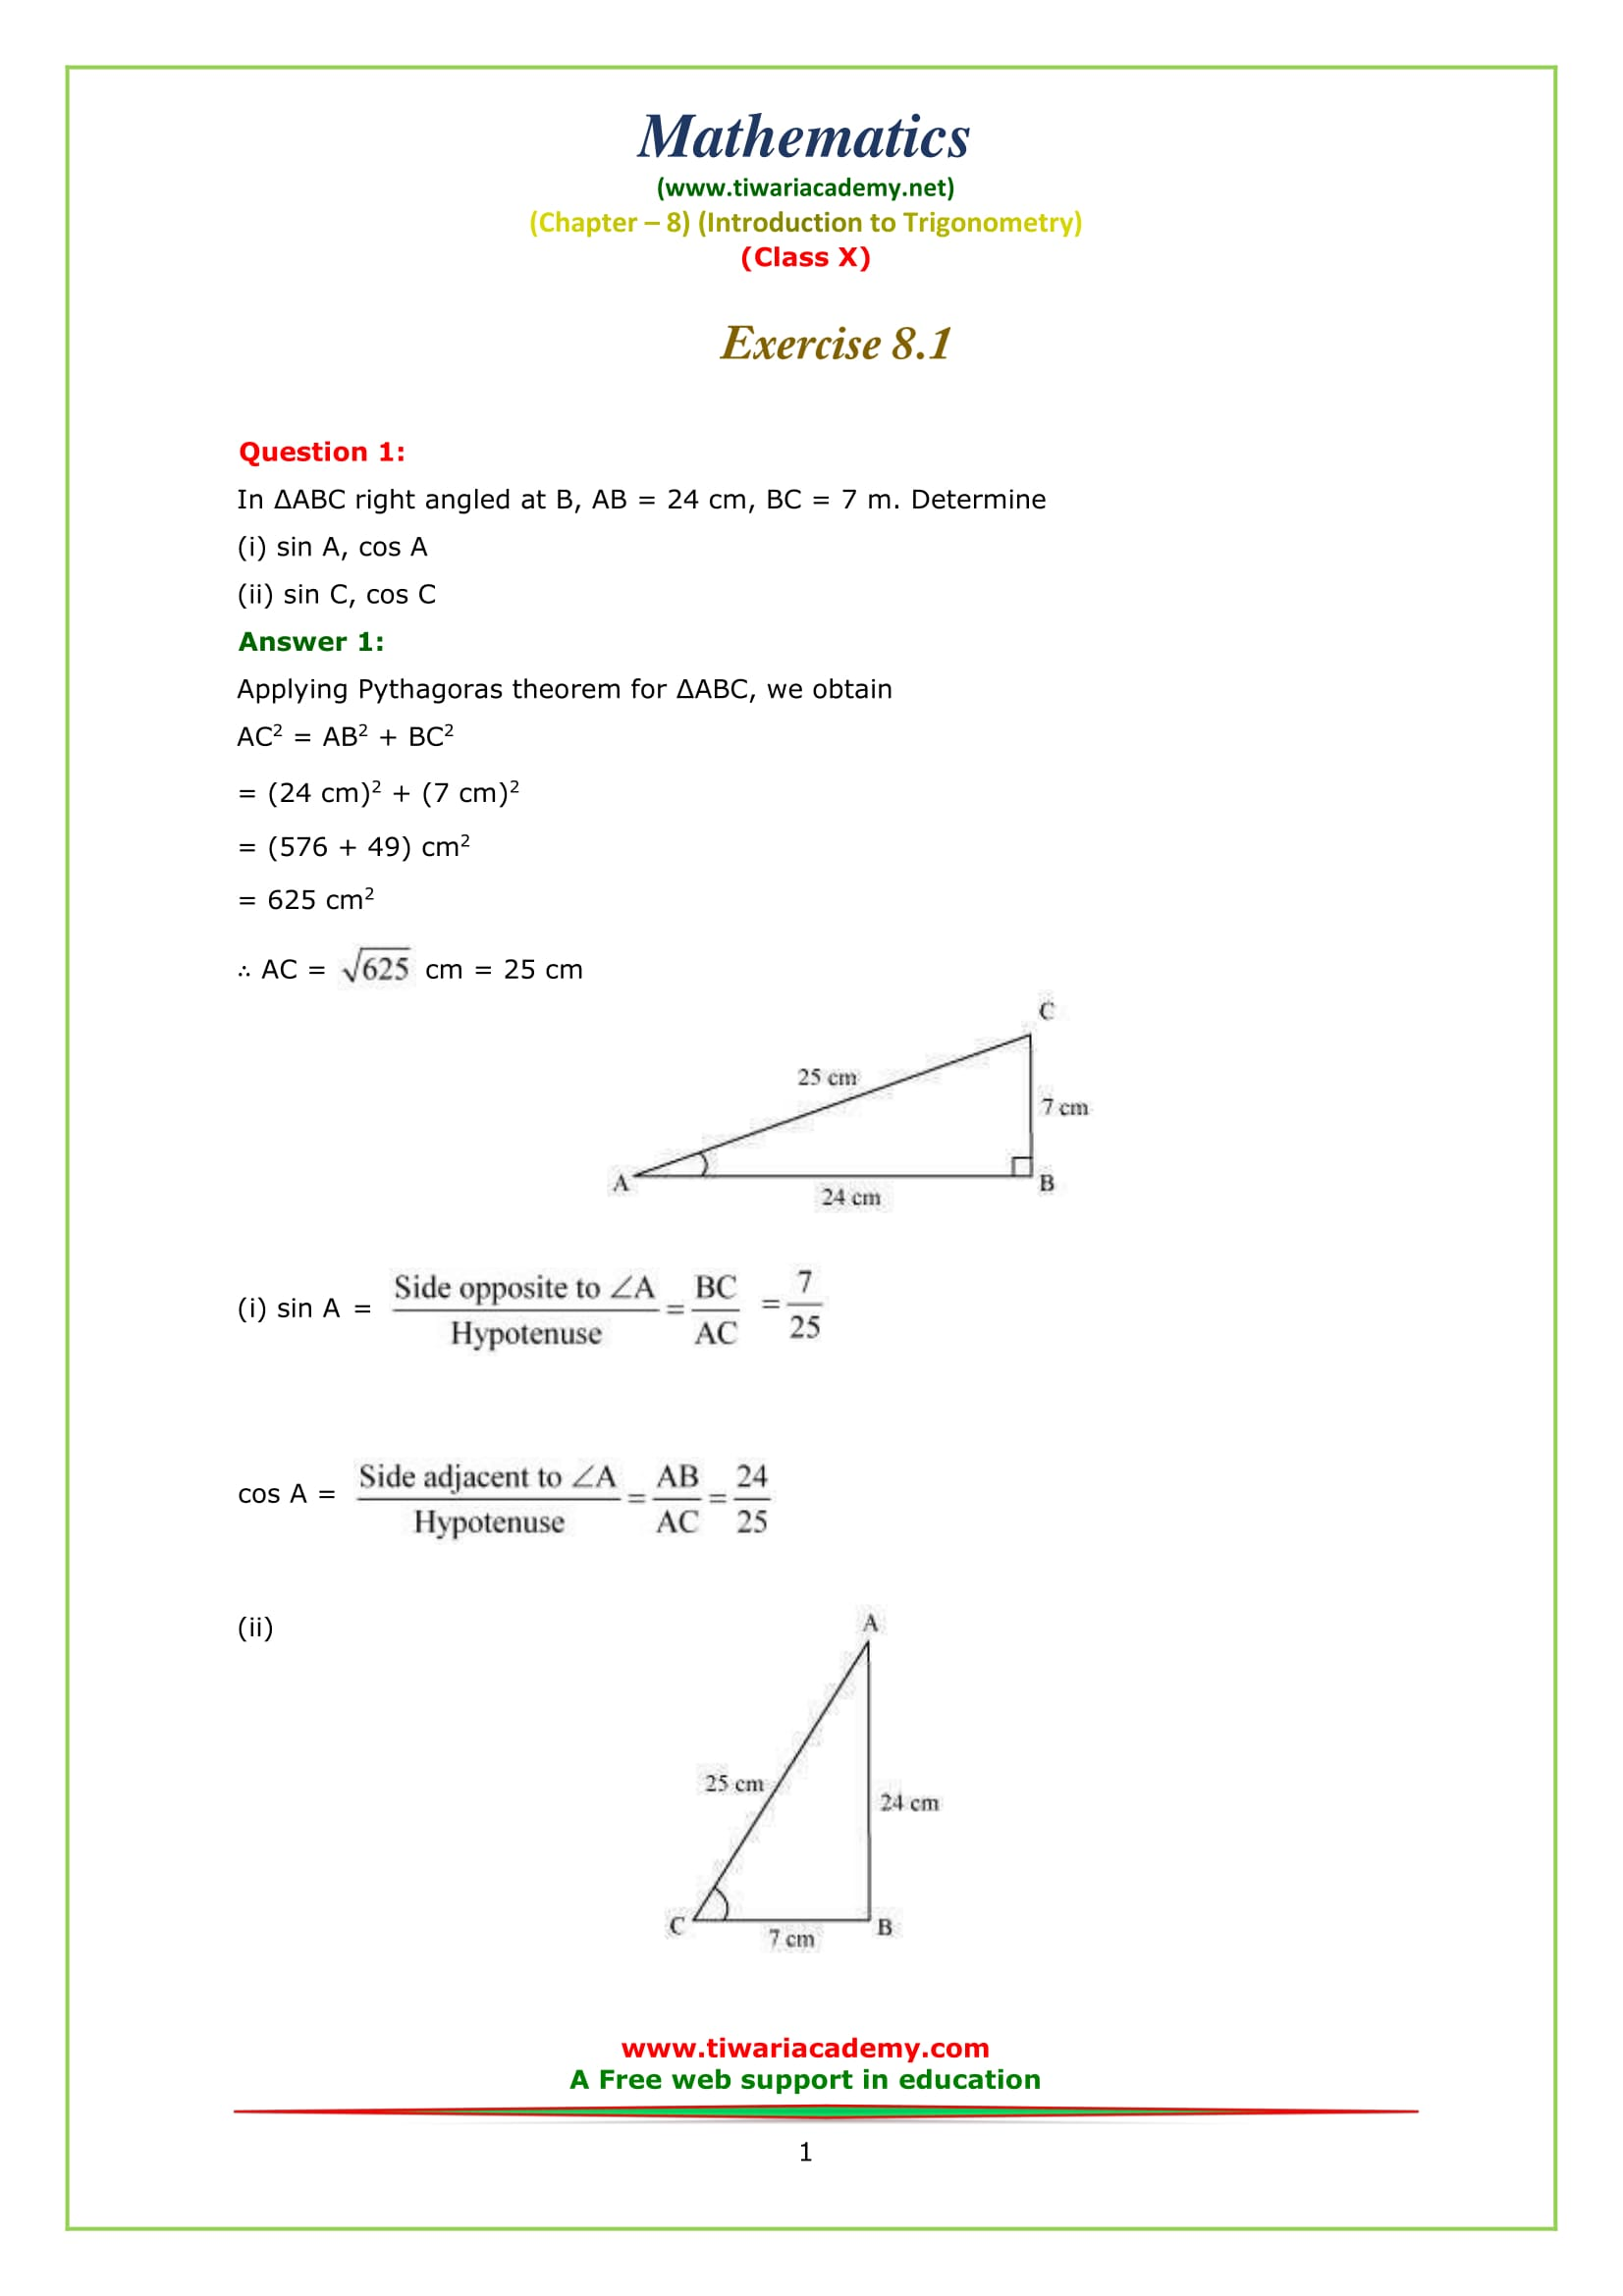 NCERT Solutions for Class 10 Maths Chapter 8 Exercise 8.1 Question 1